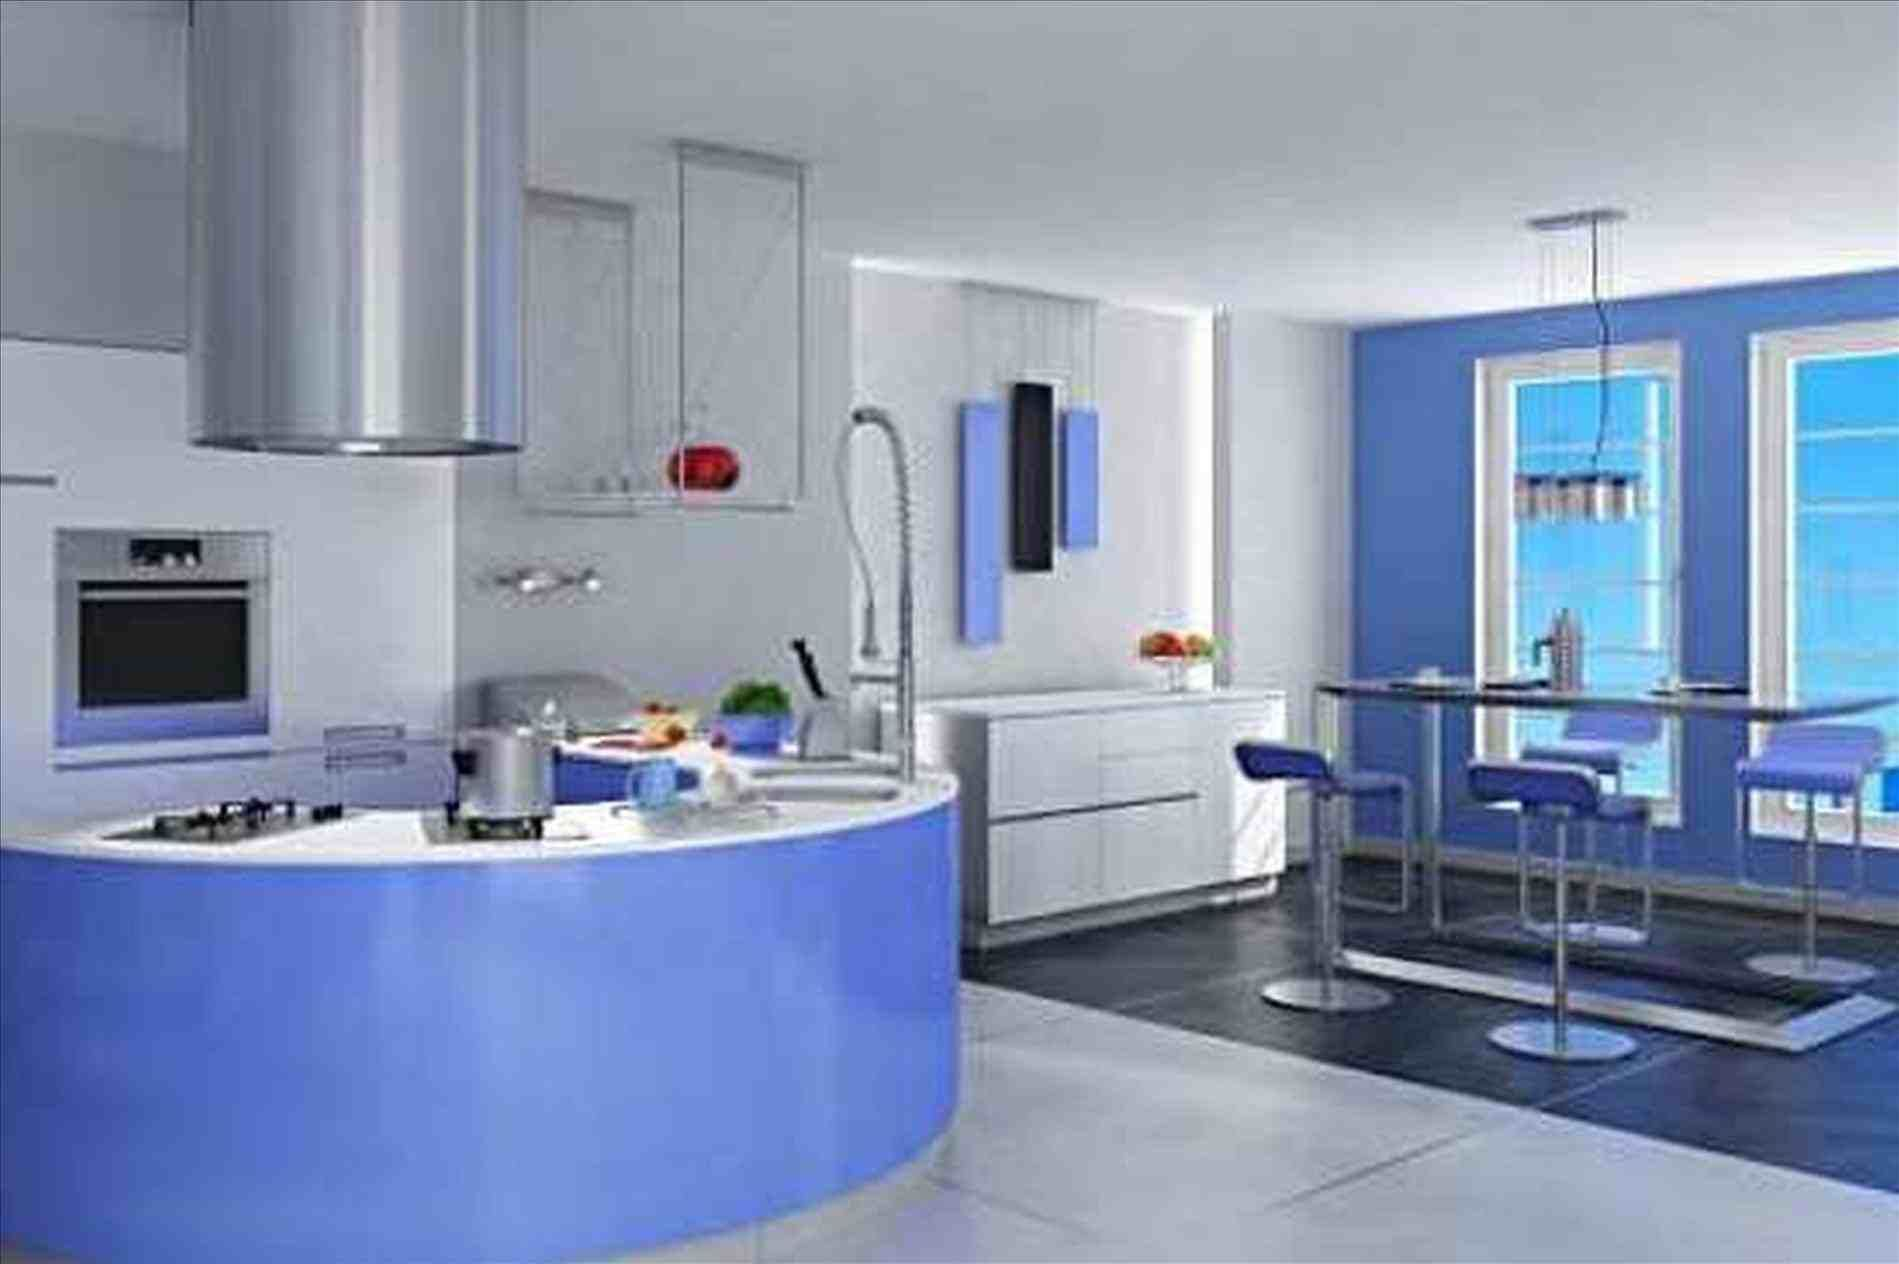 New Post home design inside kitchen simple visit Bobayule Trending ...